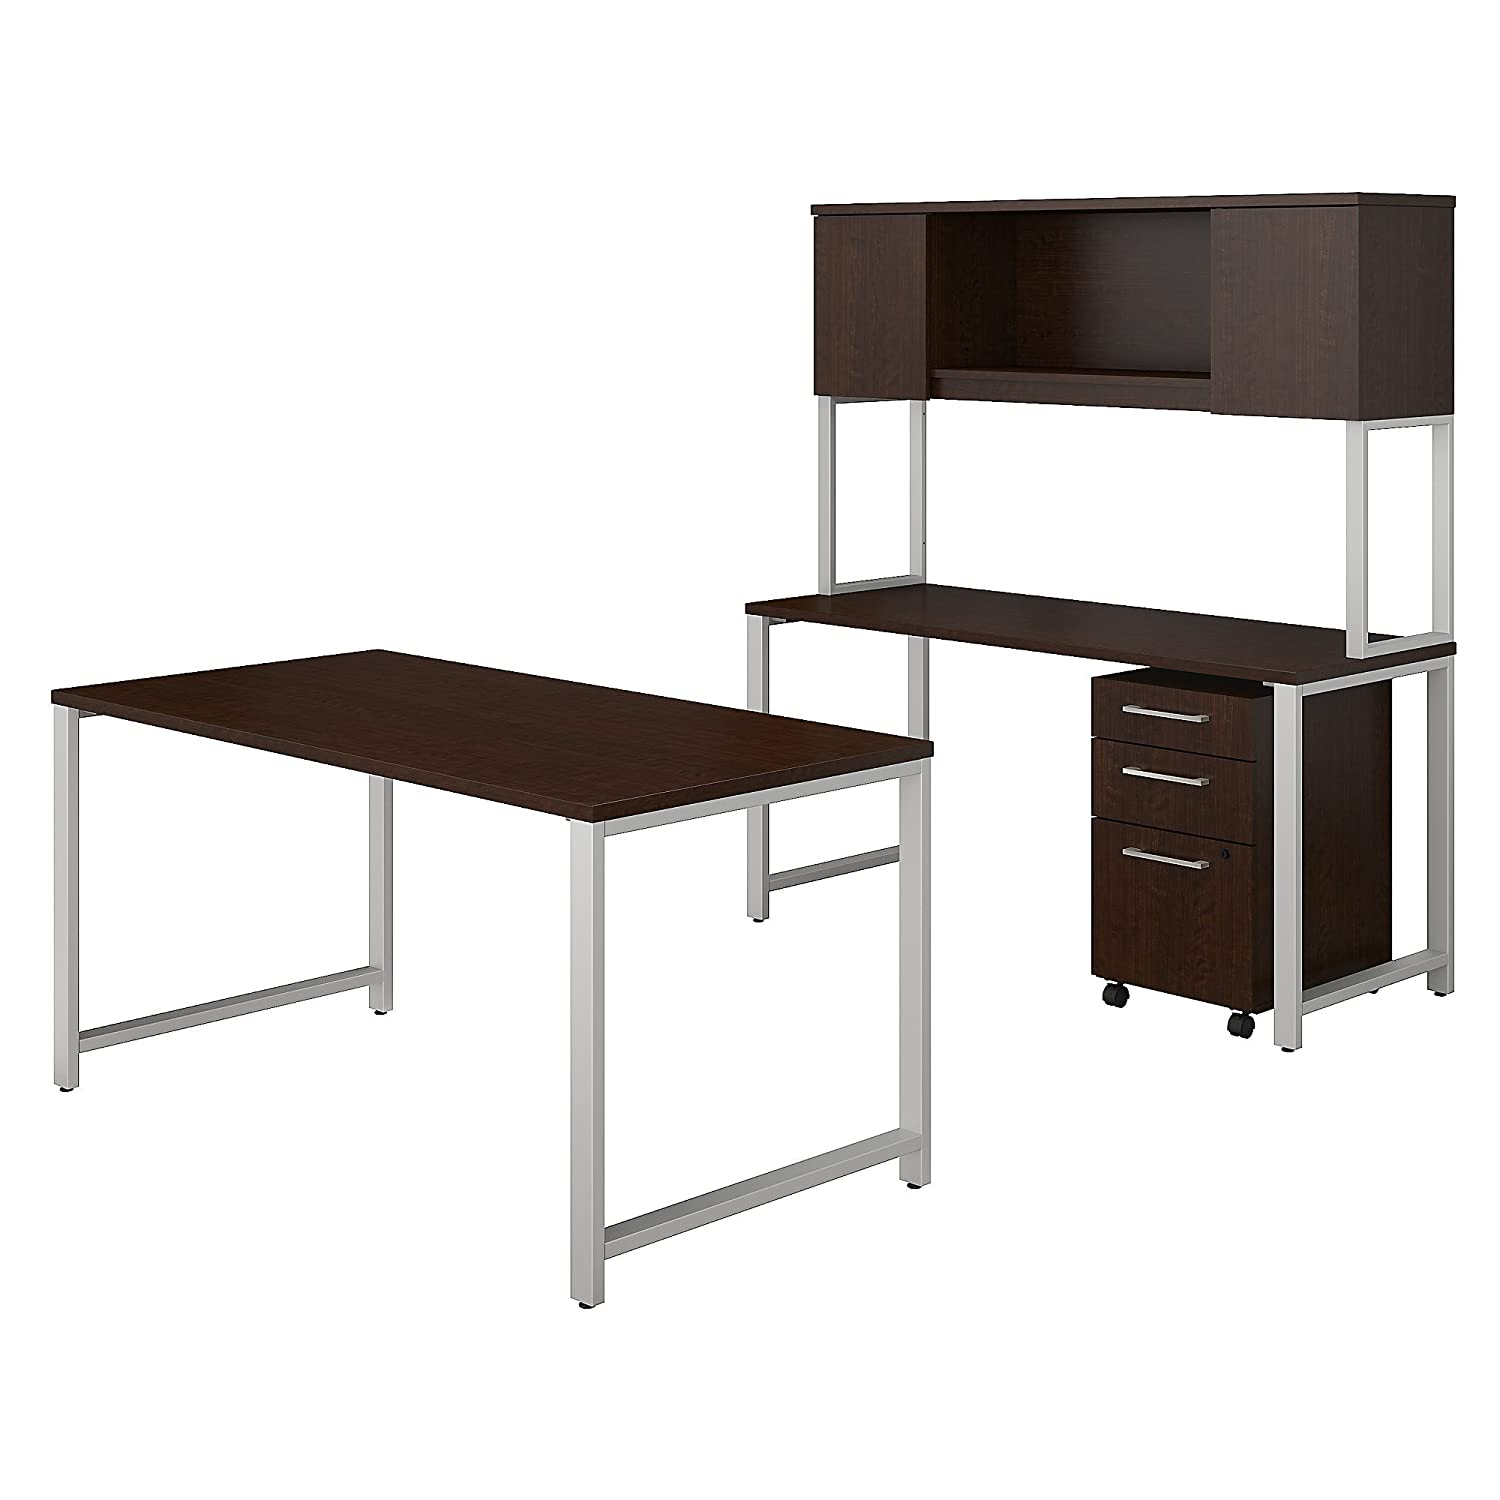 Incroyable Amazon.com: Bush Business Furniture 400 Series 60W X 30D Table Desk With  Credenza, Hutch And 3 Drawer Mobile File Cabinet In Mocha Cherry: Kitchen U0026  Dining